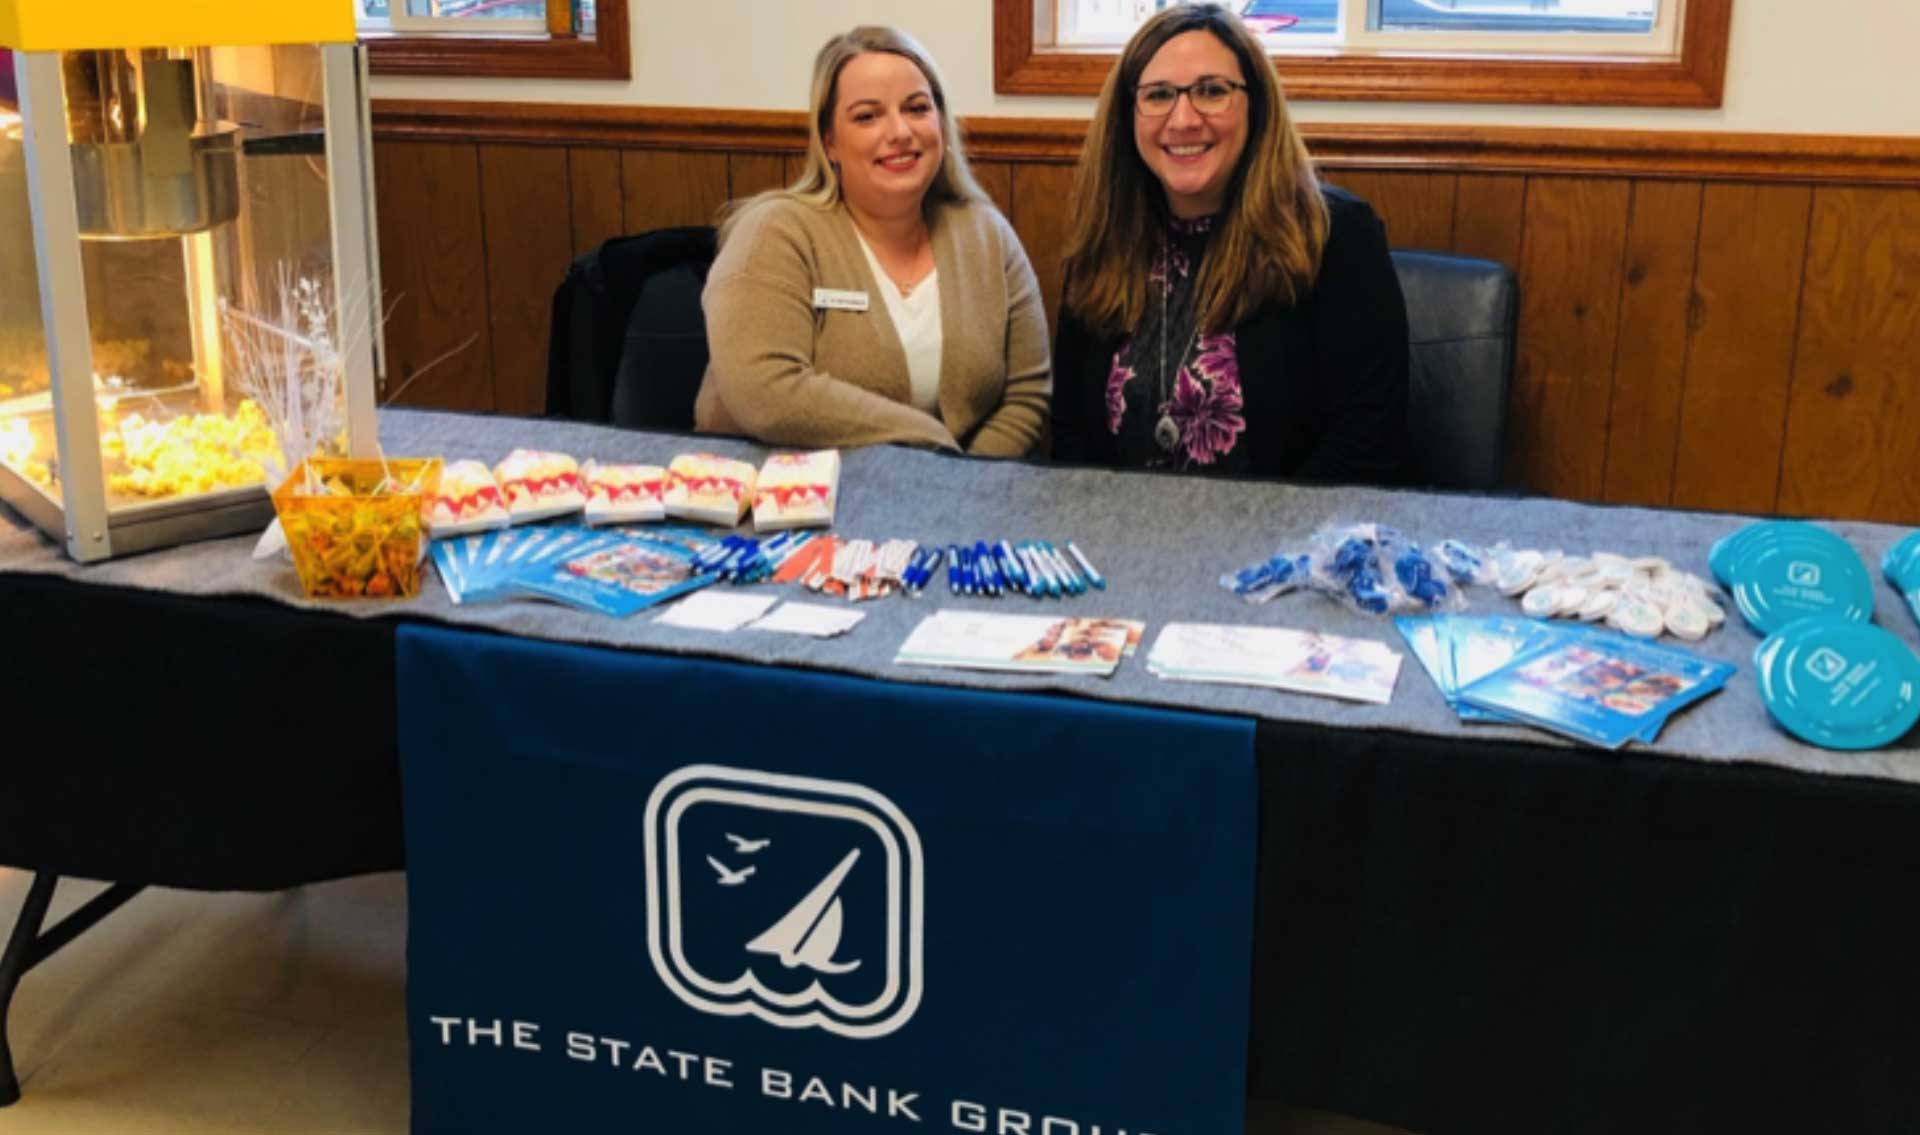 Stephanie Miller along with Branch Manager Shannon Ustanko